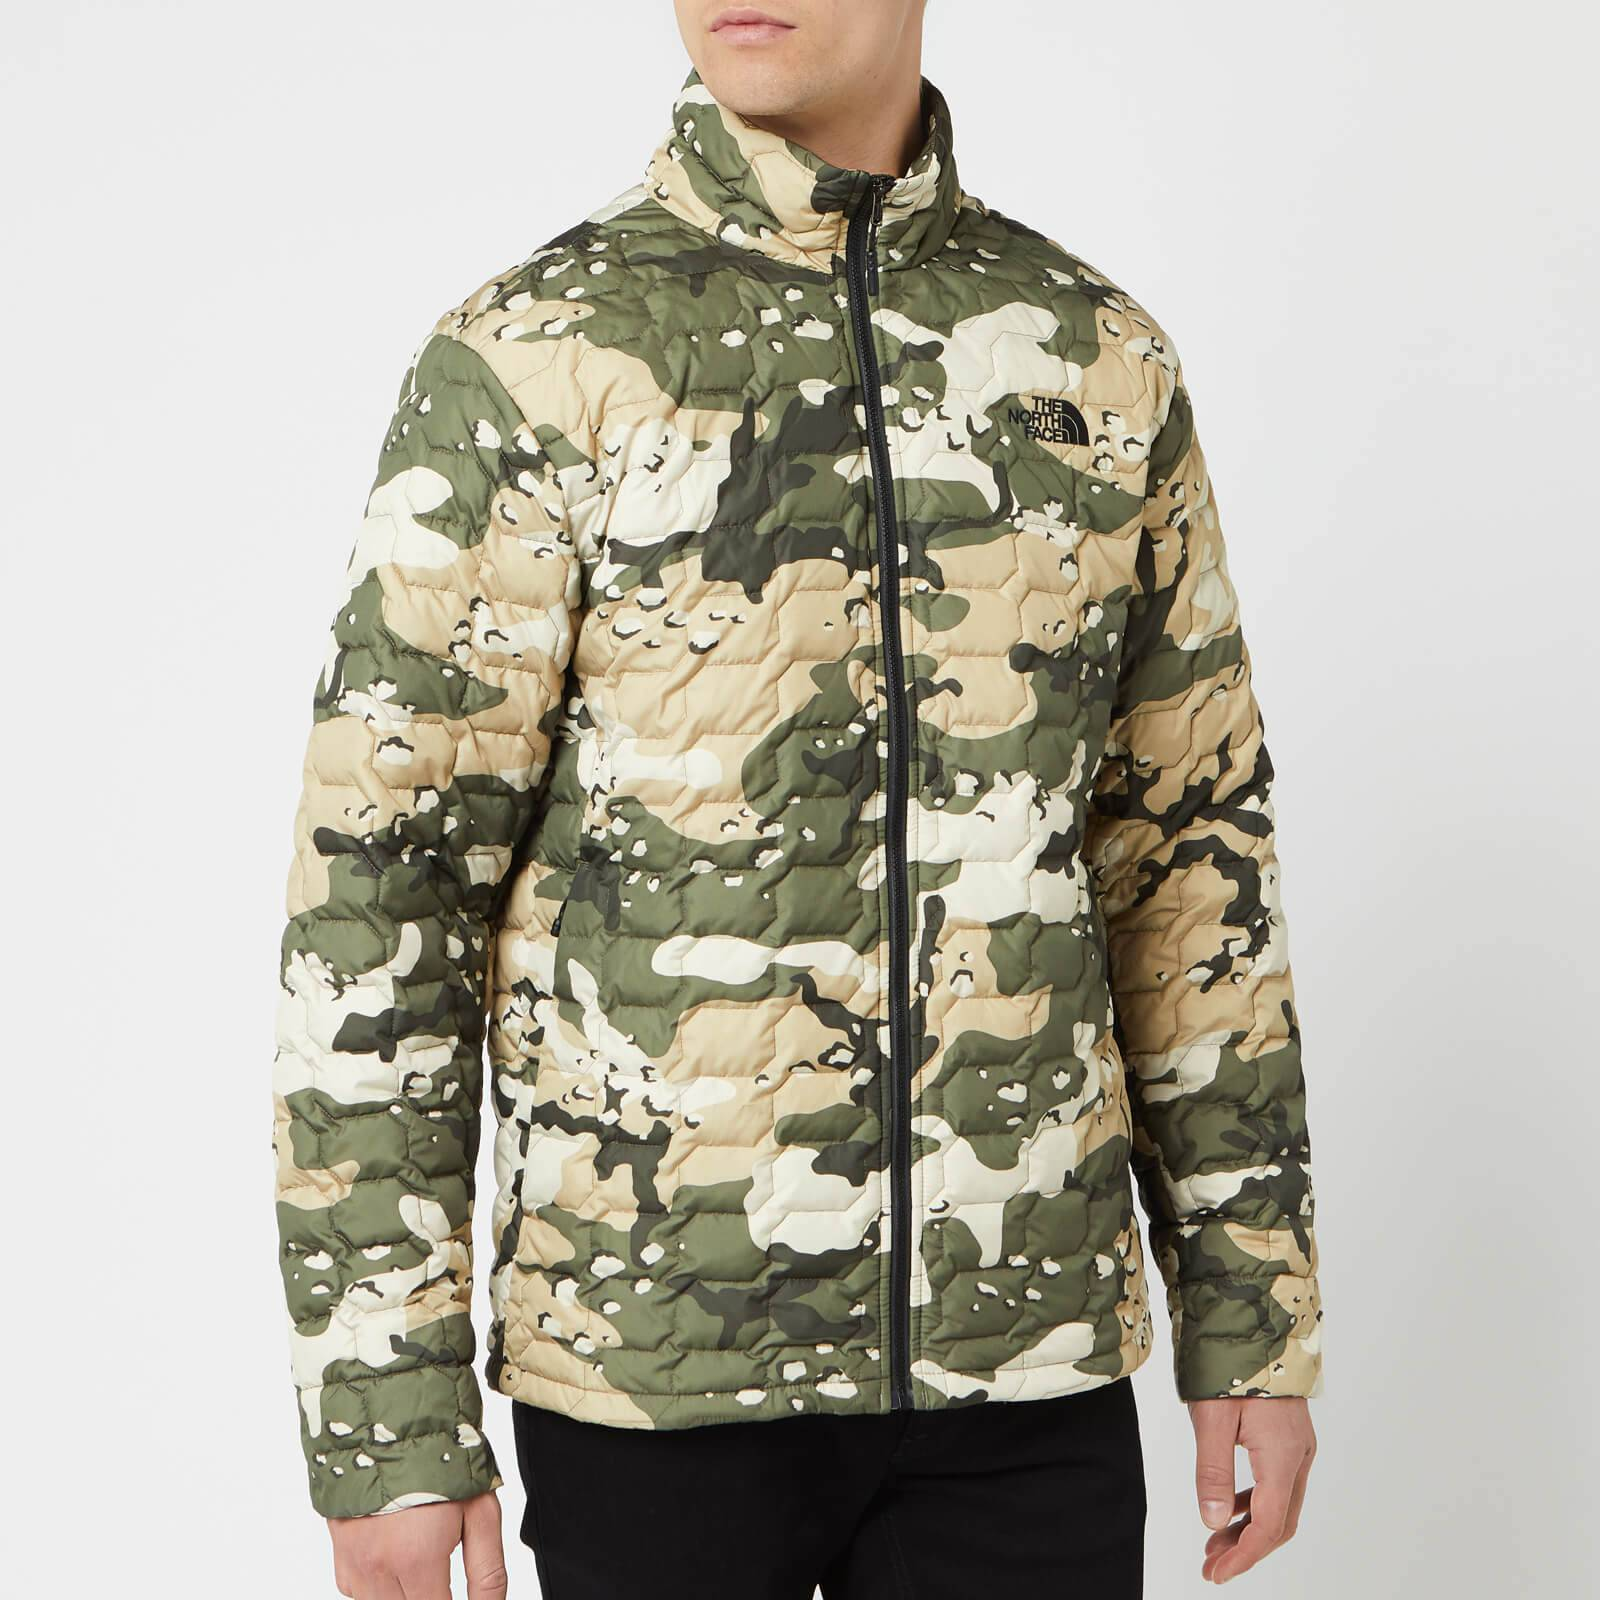 The North Face Men's Thermoball Jacket - Peyote Beige Woodchip Camp Print - L